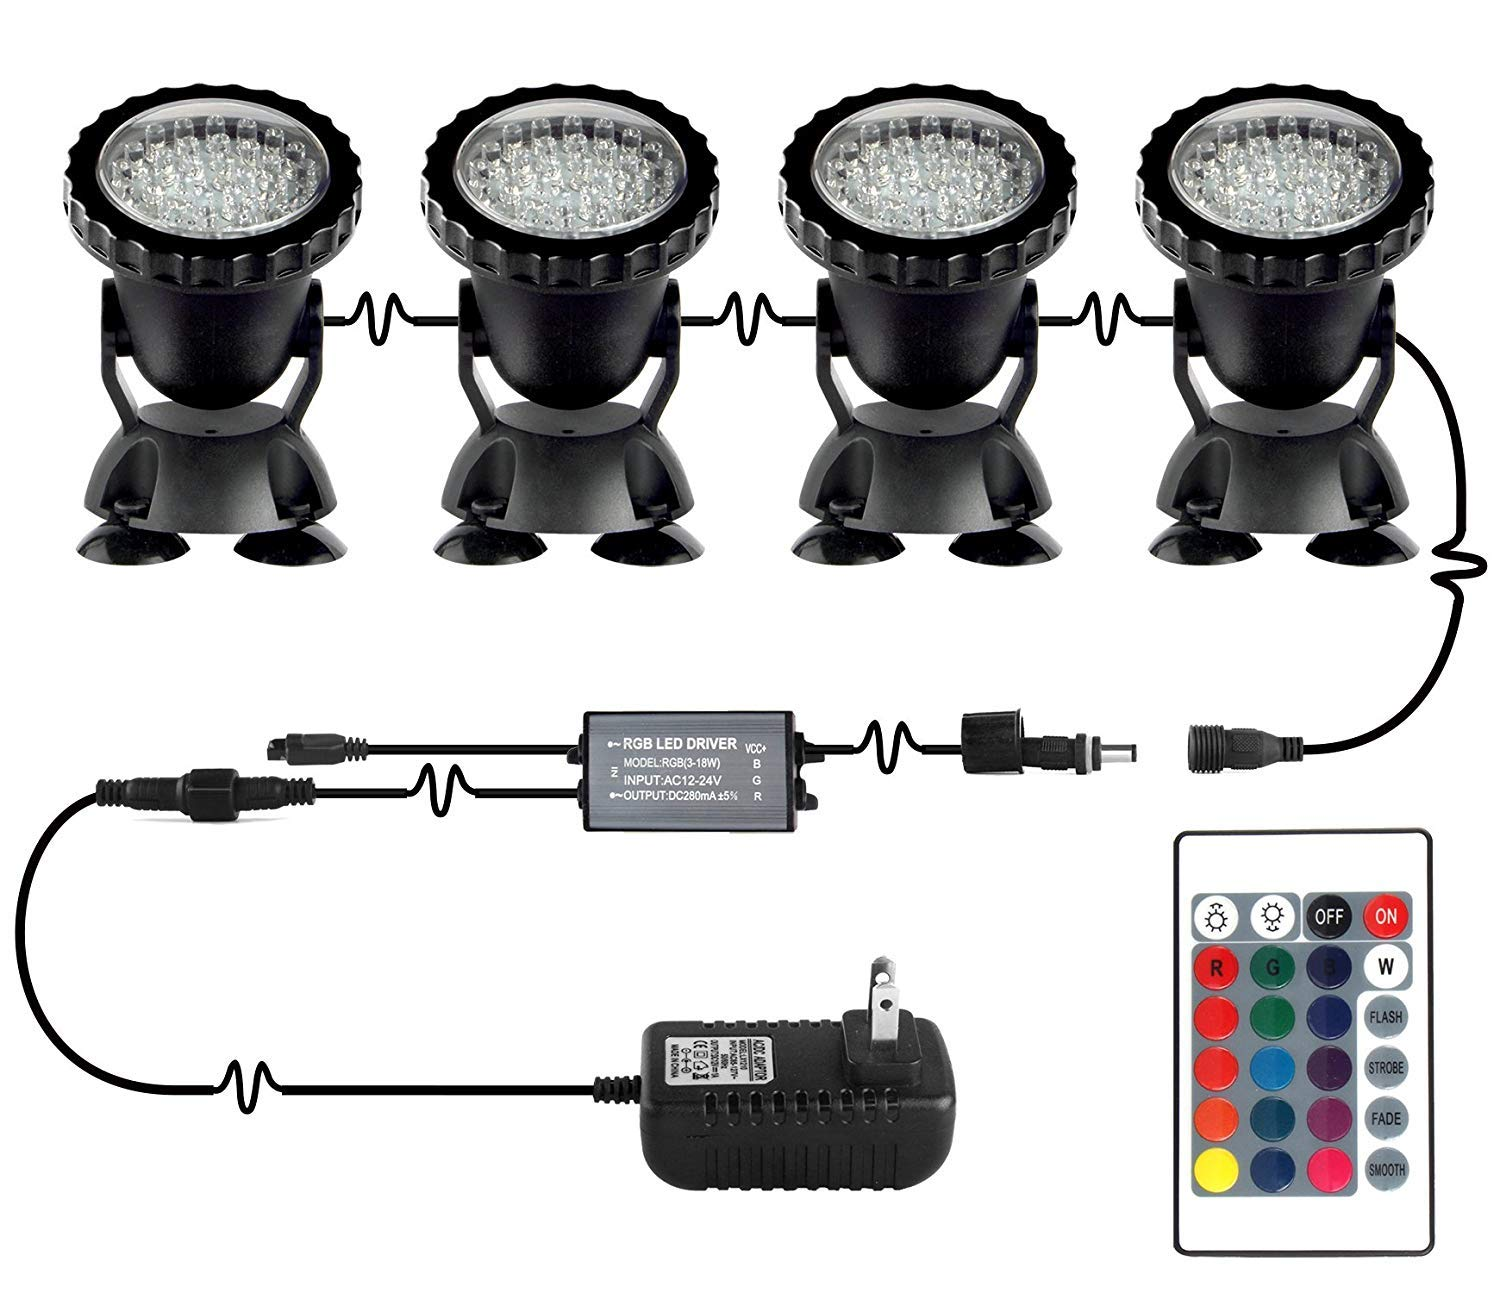 Pond Lights NEW UPGRADED Remote Control Submersible Lamp IP68 Totally Full Waterproof Underwater Aquarium Spotlight 36-LED Multi-color Decoration Landscape Lamp for Swimming Pool Fish (Set of 4)